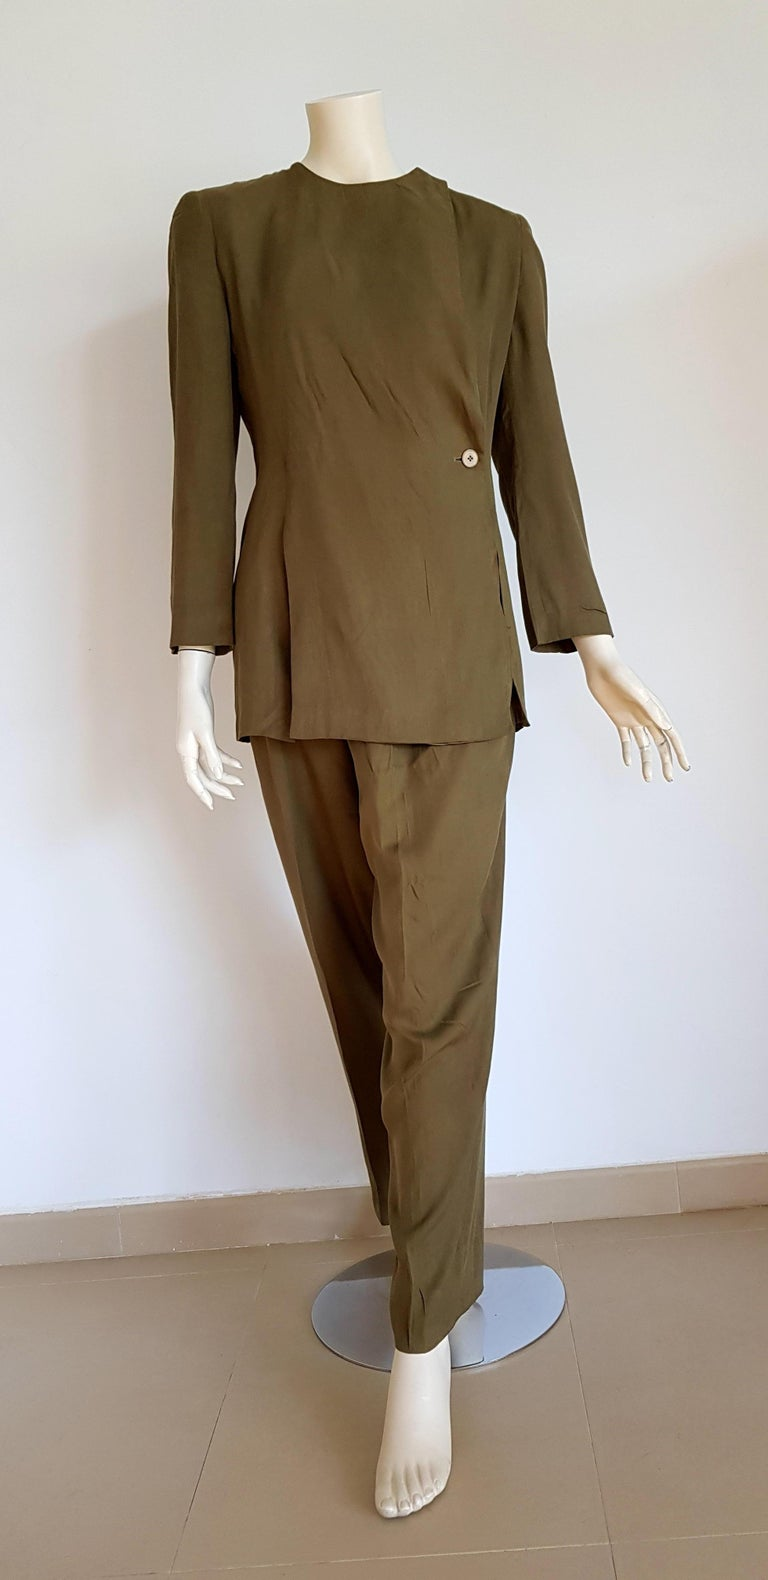 Giorgio ARMANI green silk with 1 button closed collar, trousers suit  - Unworn, New  SIZE: equivalent to about Small / Medium, please review approx measurements as follows in cm.  JACKET: lenght 75, chest underarm to underarm 50, bust circumference